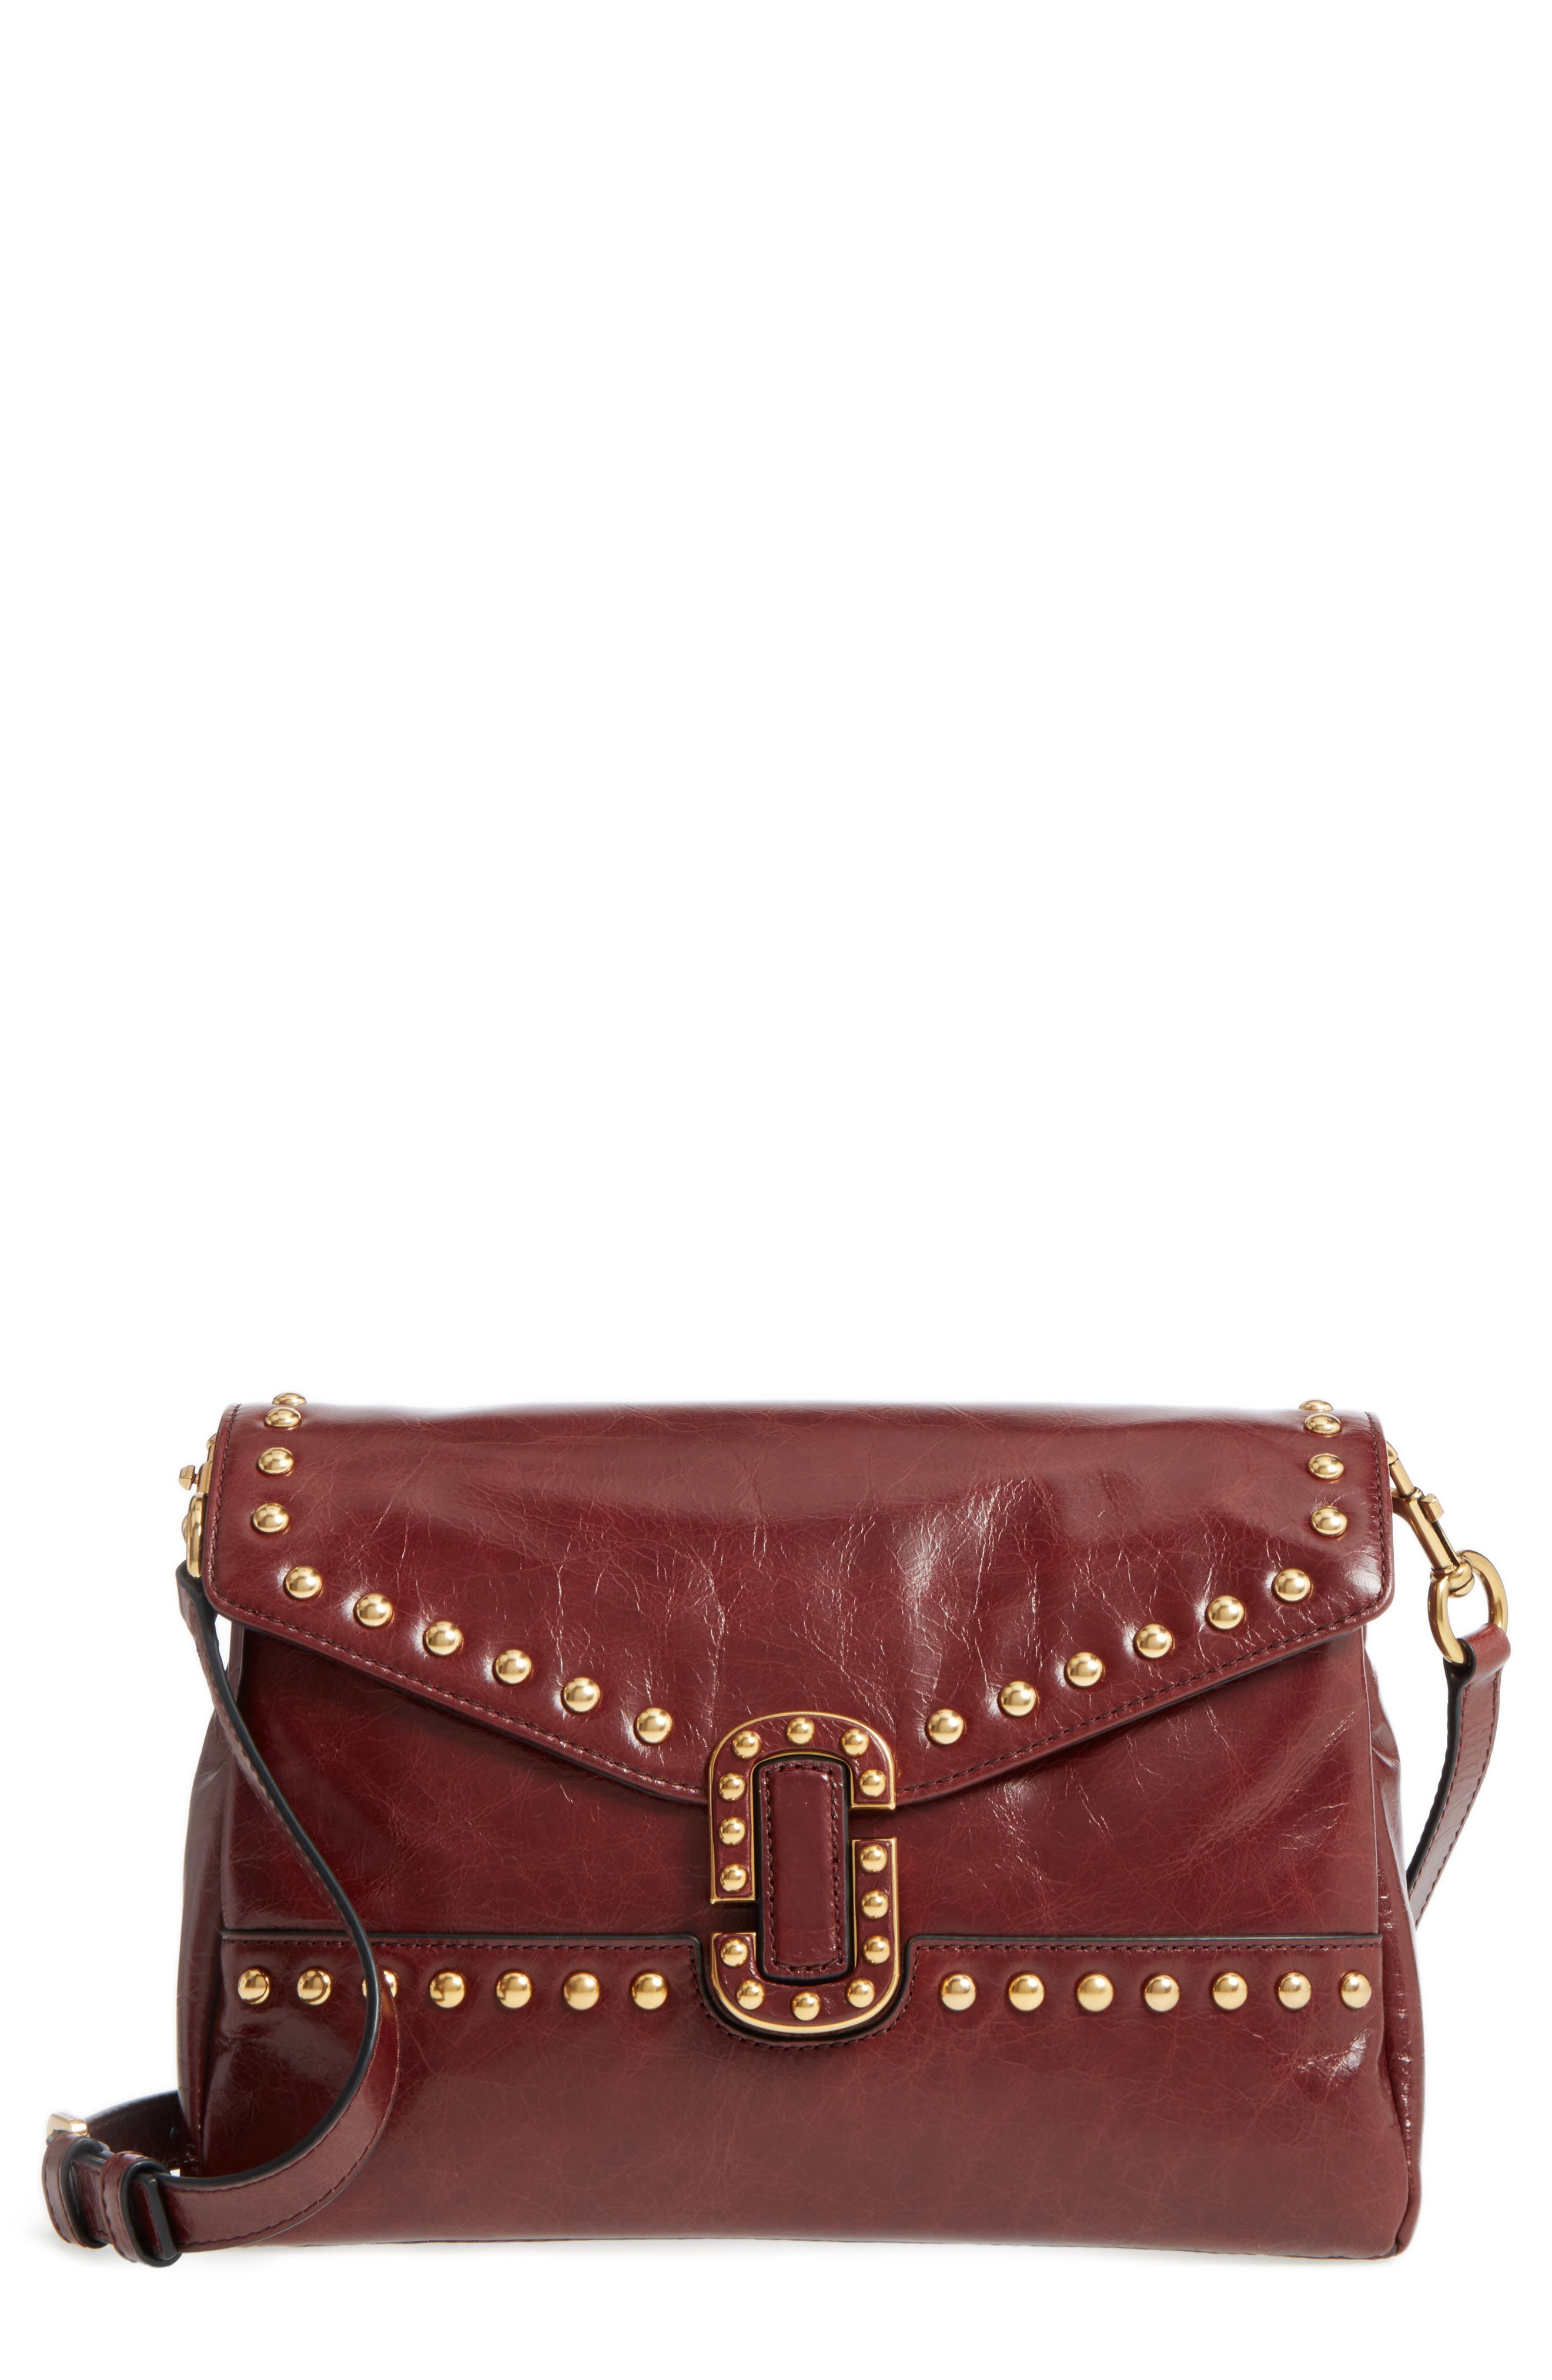 MARC JACOBS Small Studded Leather Envelope Bag